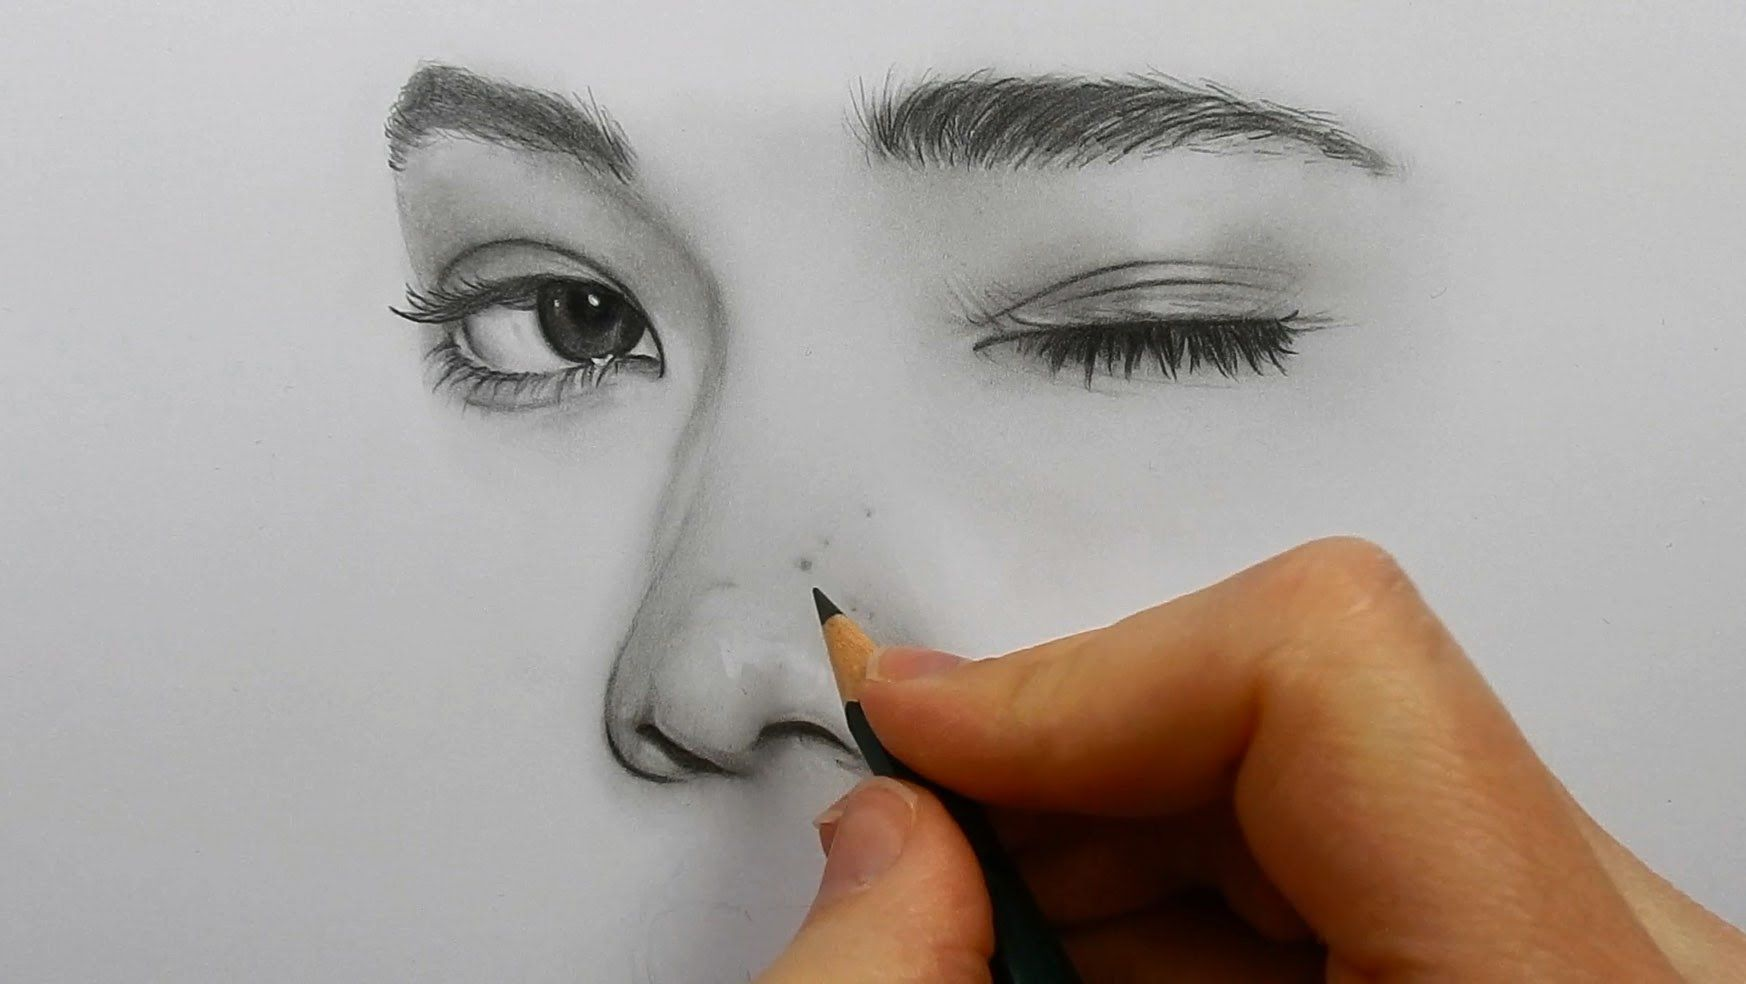 Drawing Shading And Blending A Face With Graphite Pencils  Fabercastell